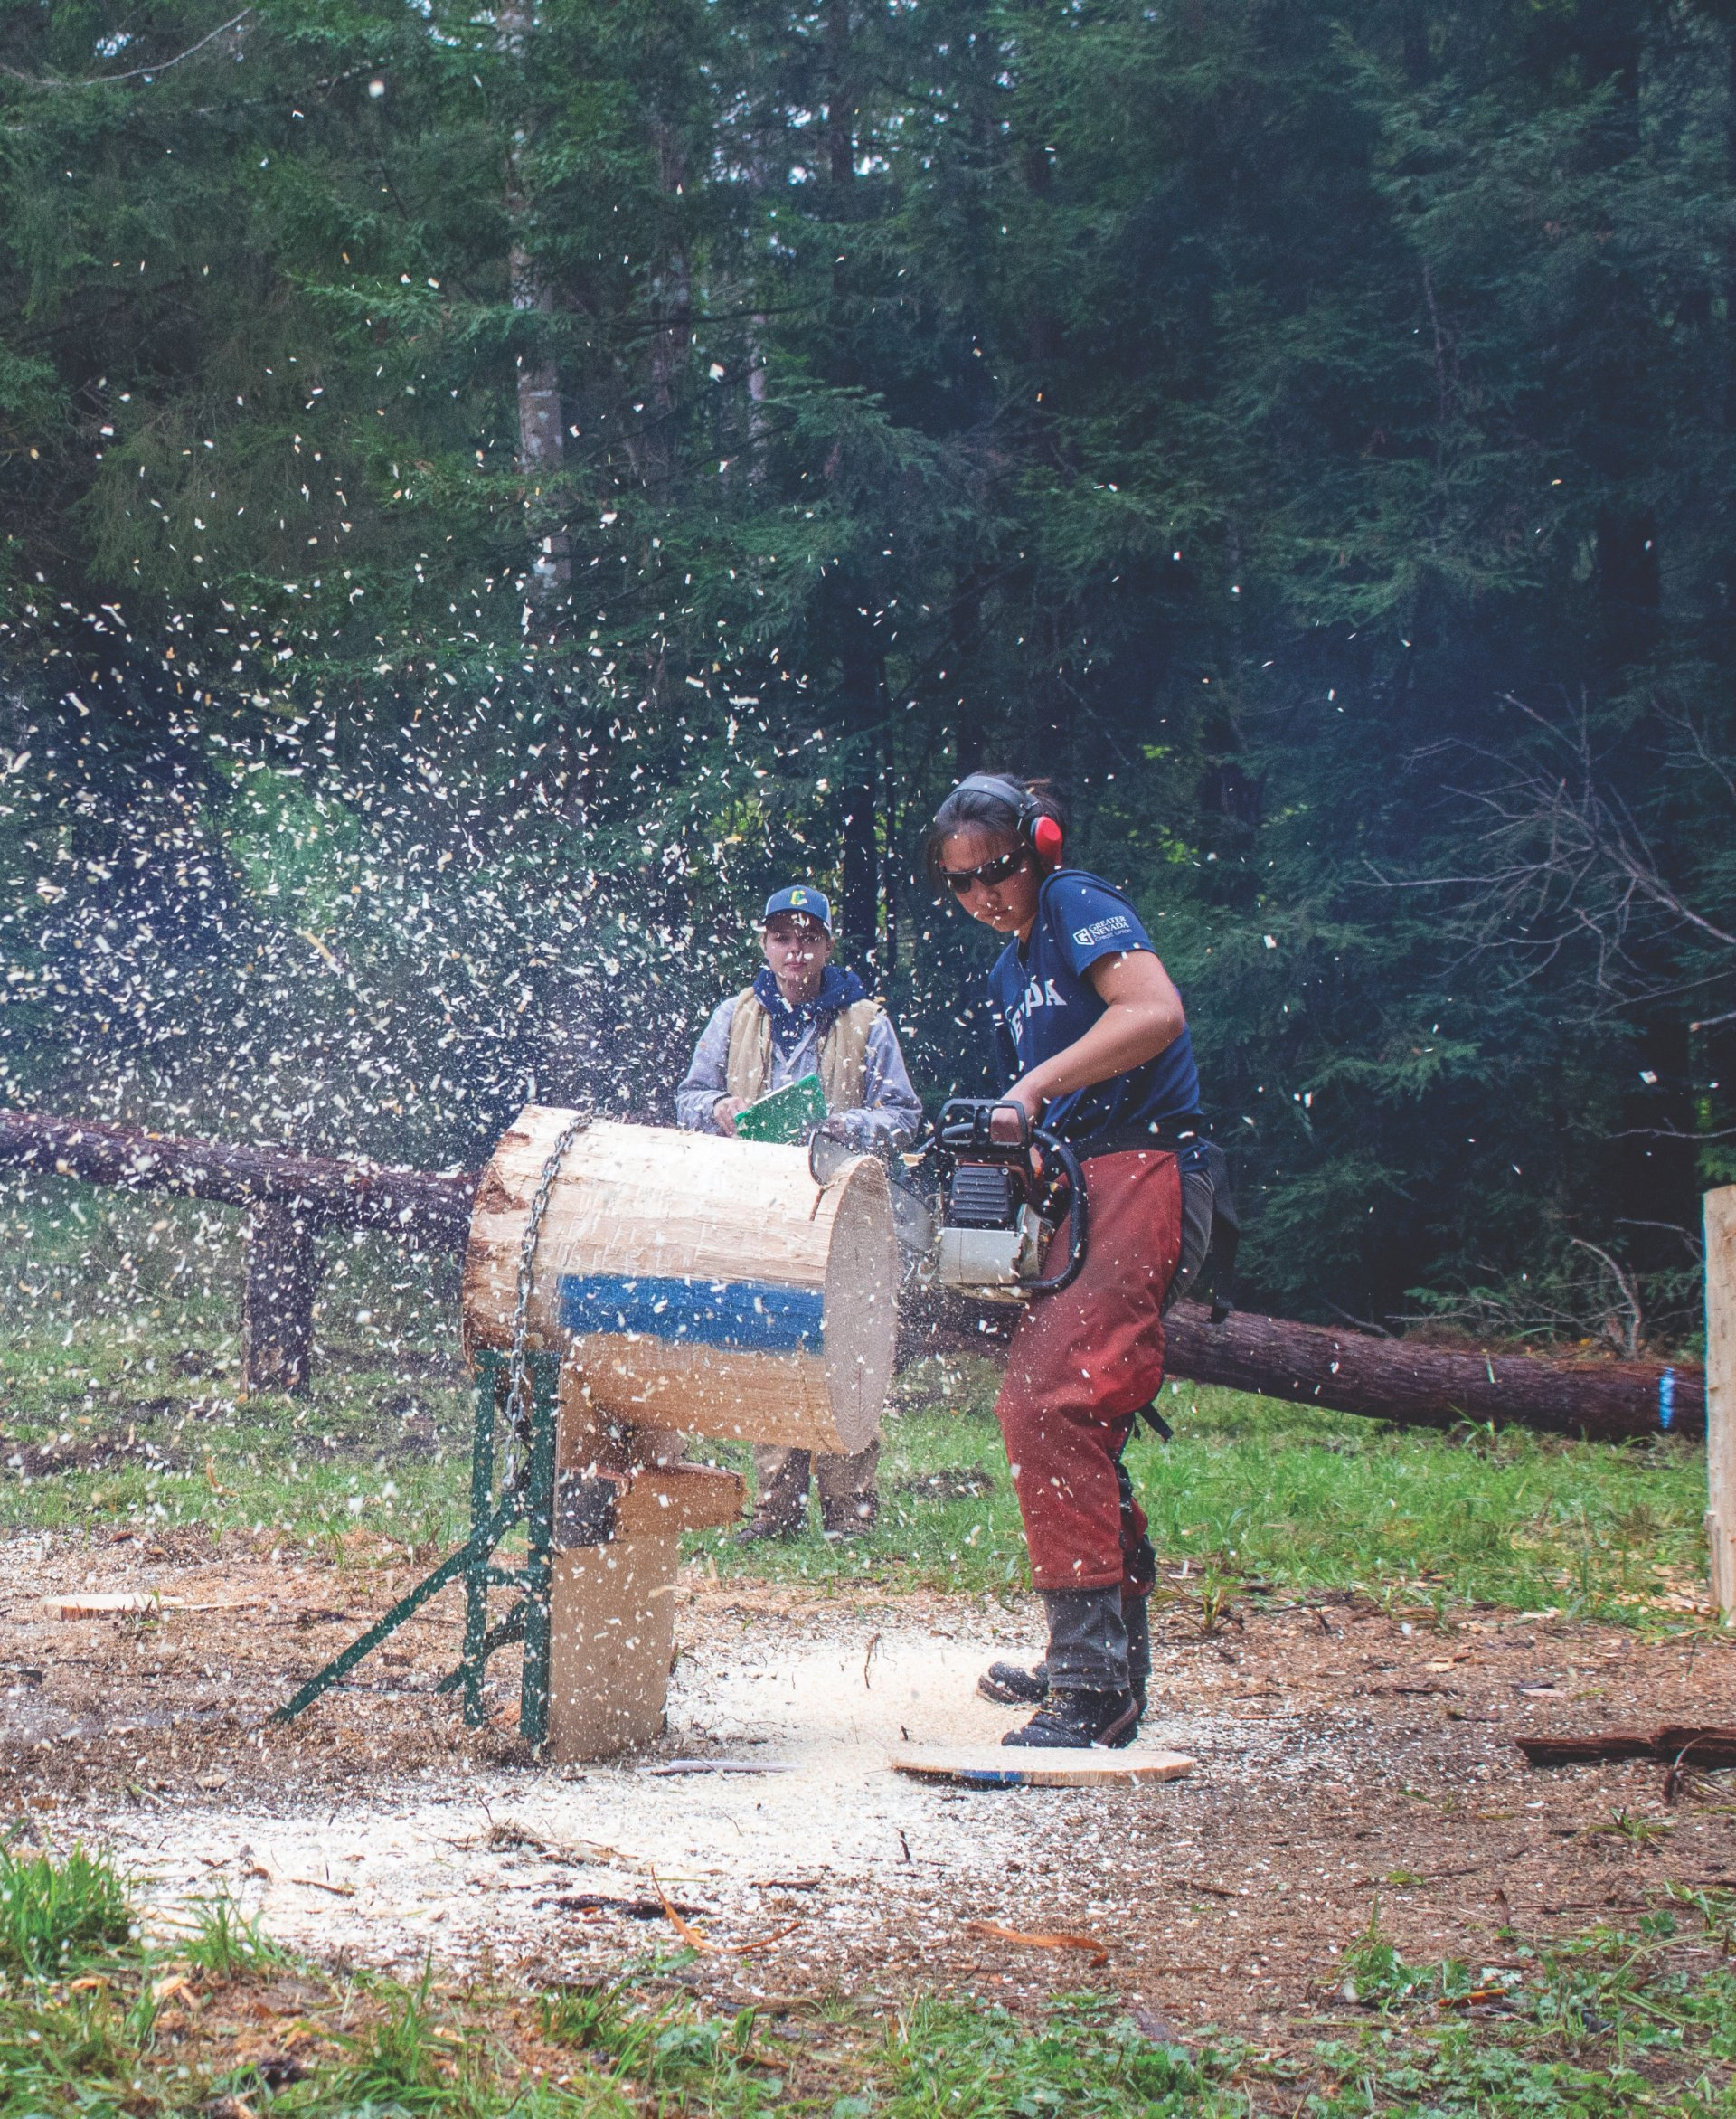 Ginny-Mei Adams of University of Nevada, Reno sending saw dust into the air as her chainsaw digs into a log.   Photo by Alberto Muro.